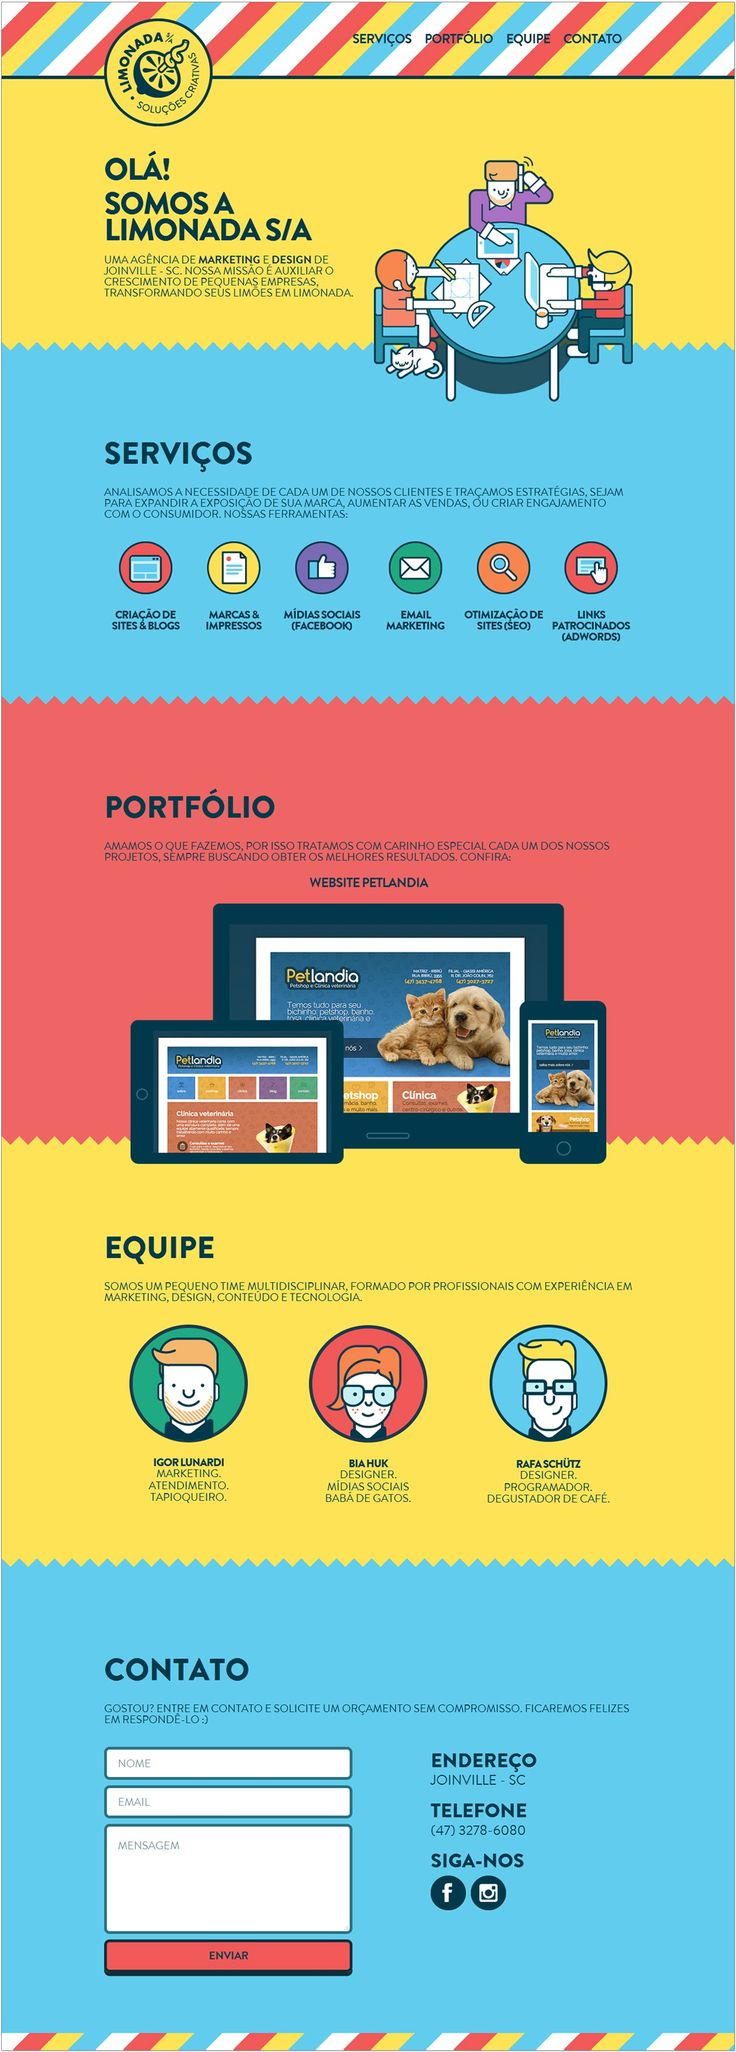 391 best Info graphic images on Pinterest | Graphics, Infographic ...